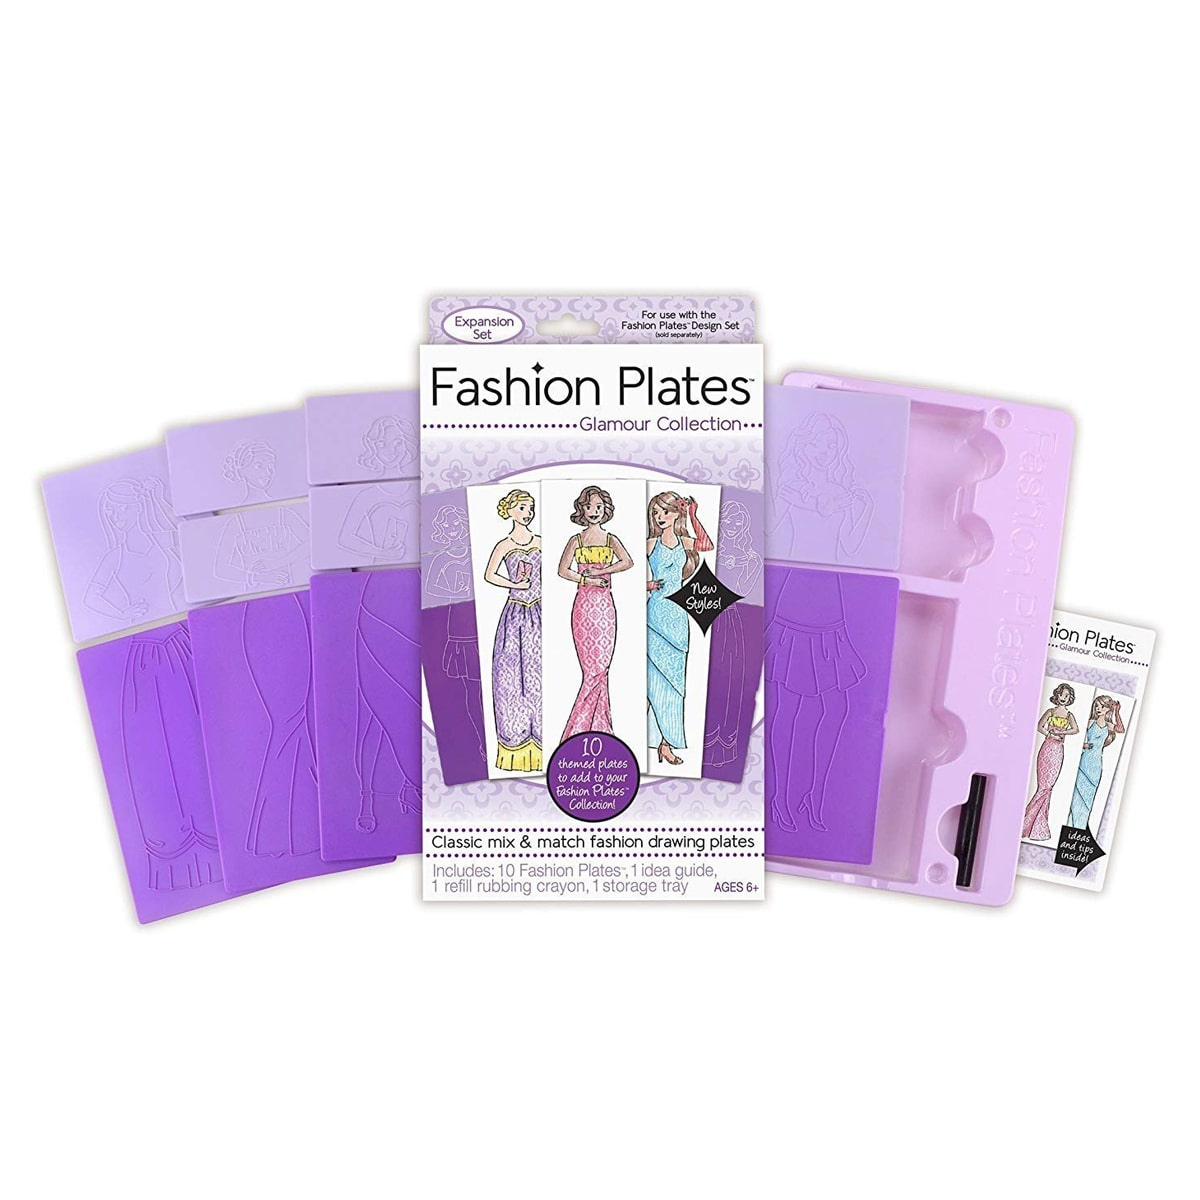 Fashion Plates Glamour At Toys R Us